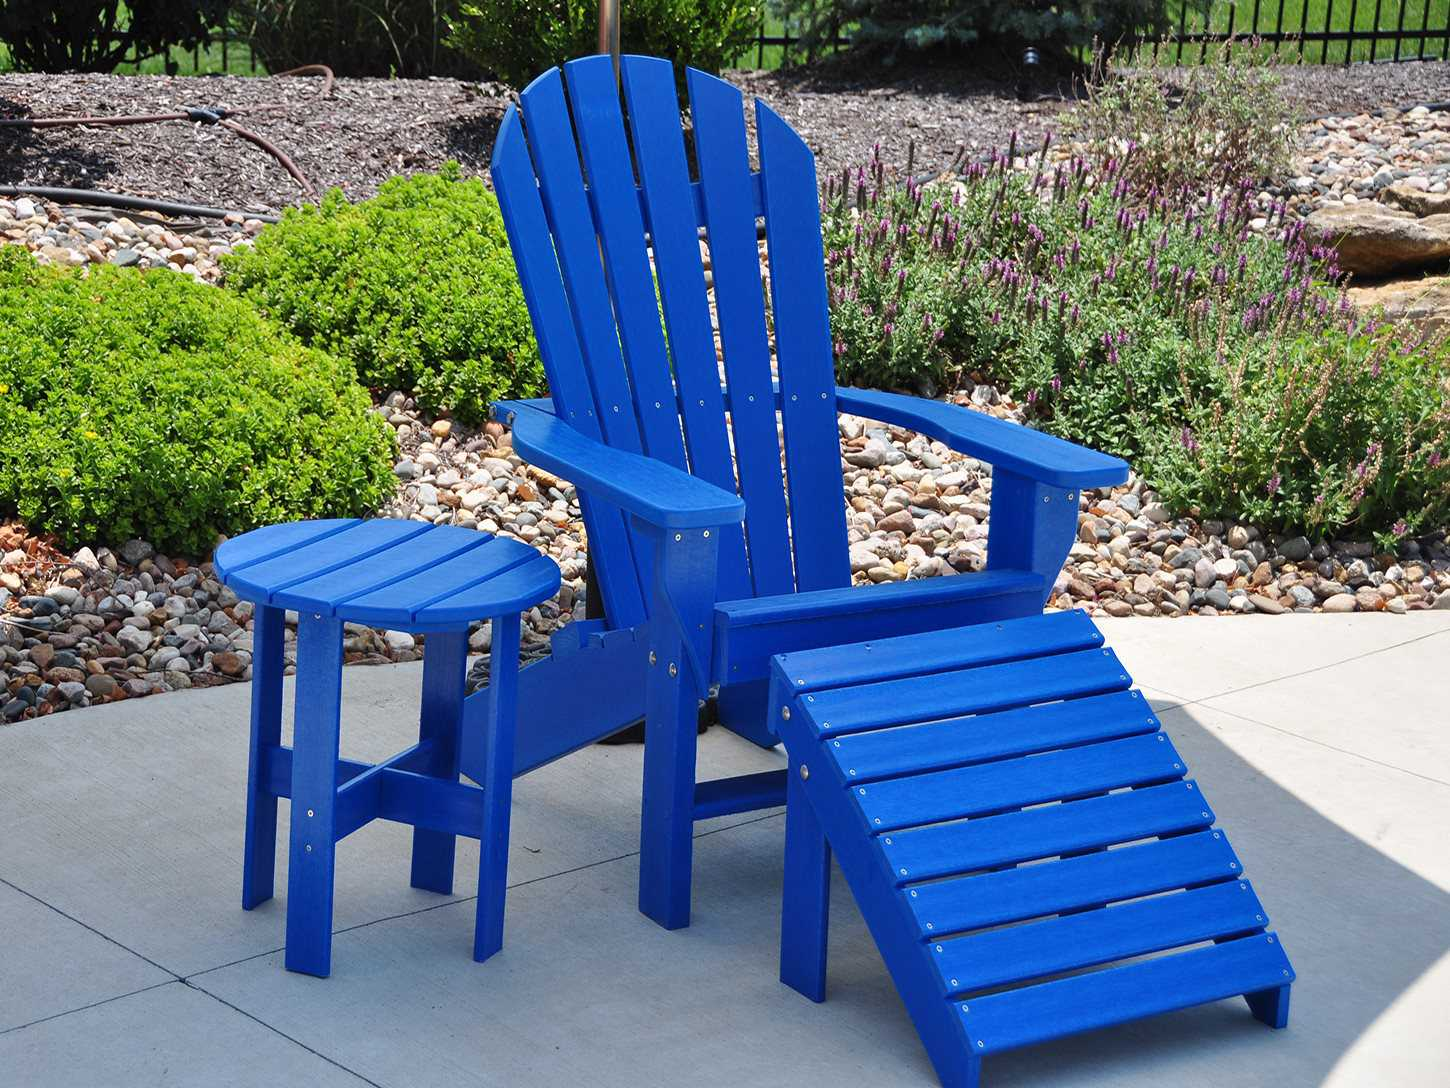 Recycled Adirondack Chairs Frog Furnishings Recycled Plastic Seaside Adirondack Chair